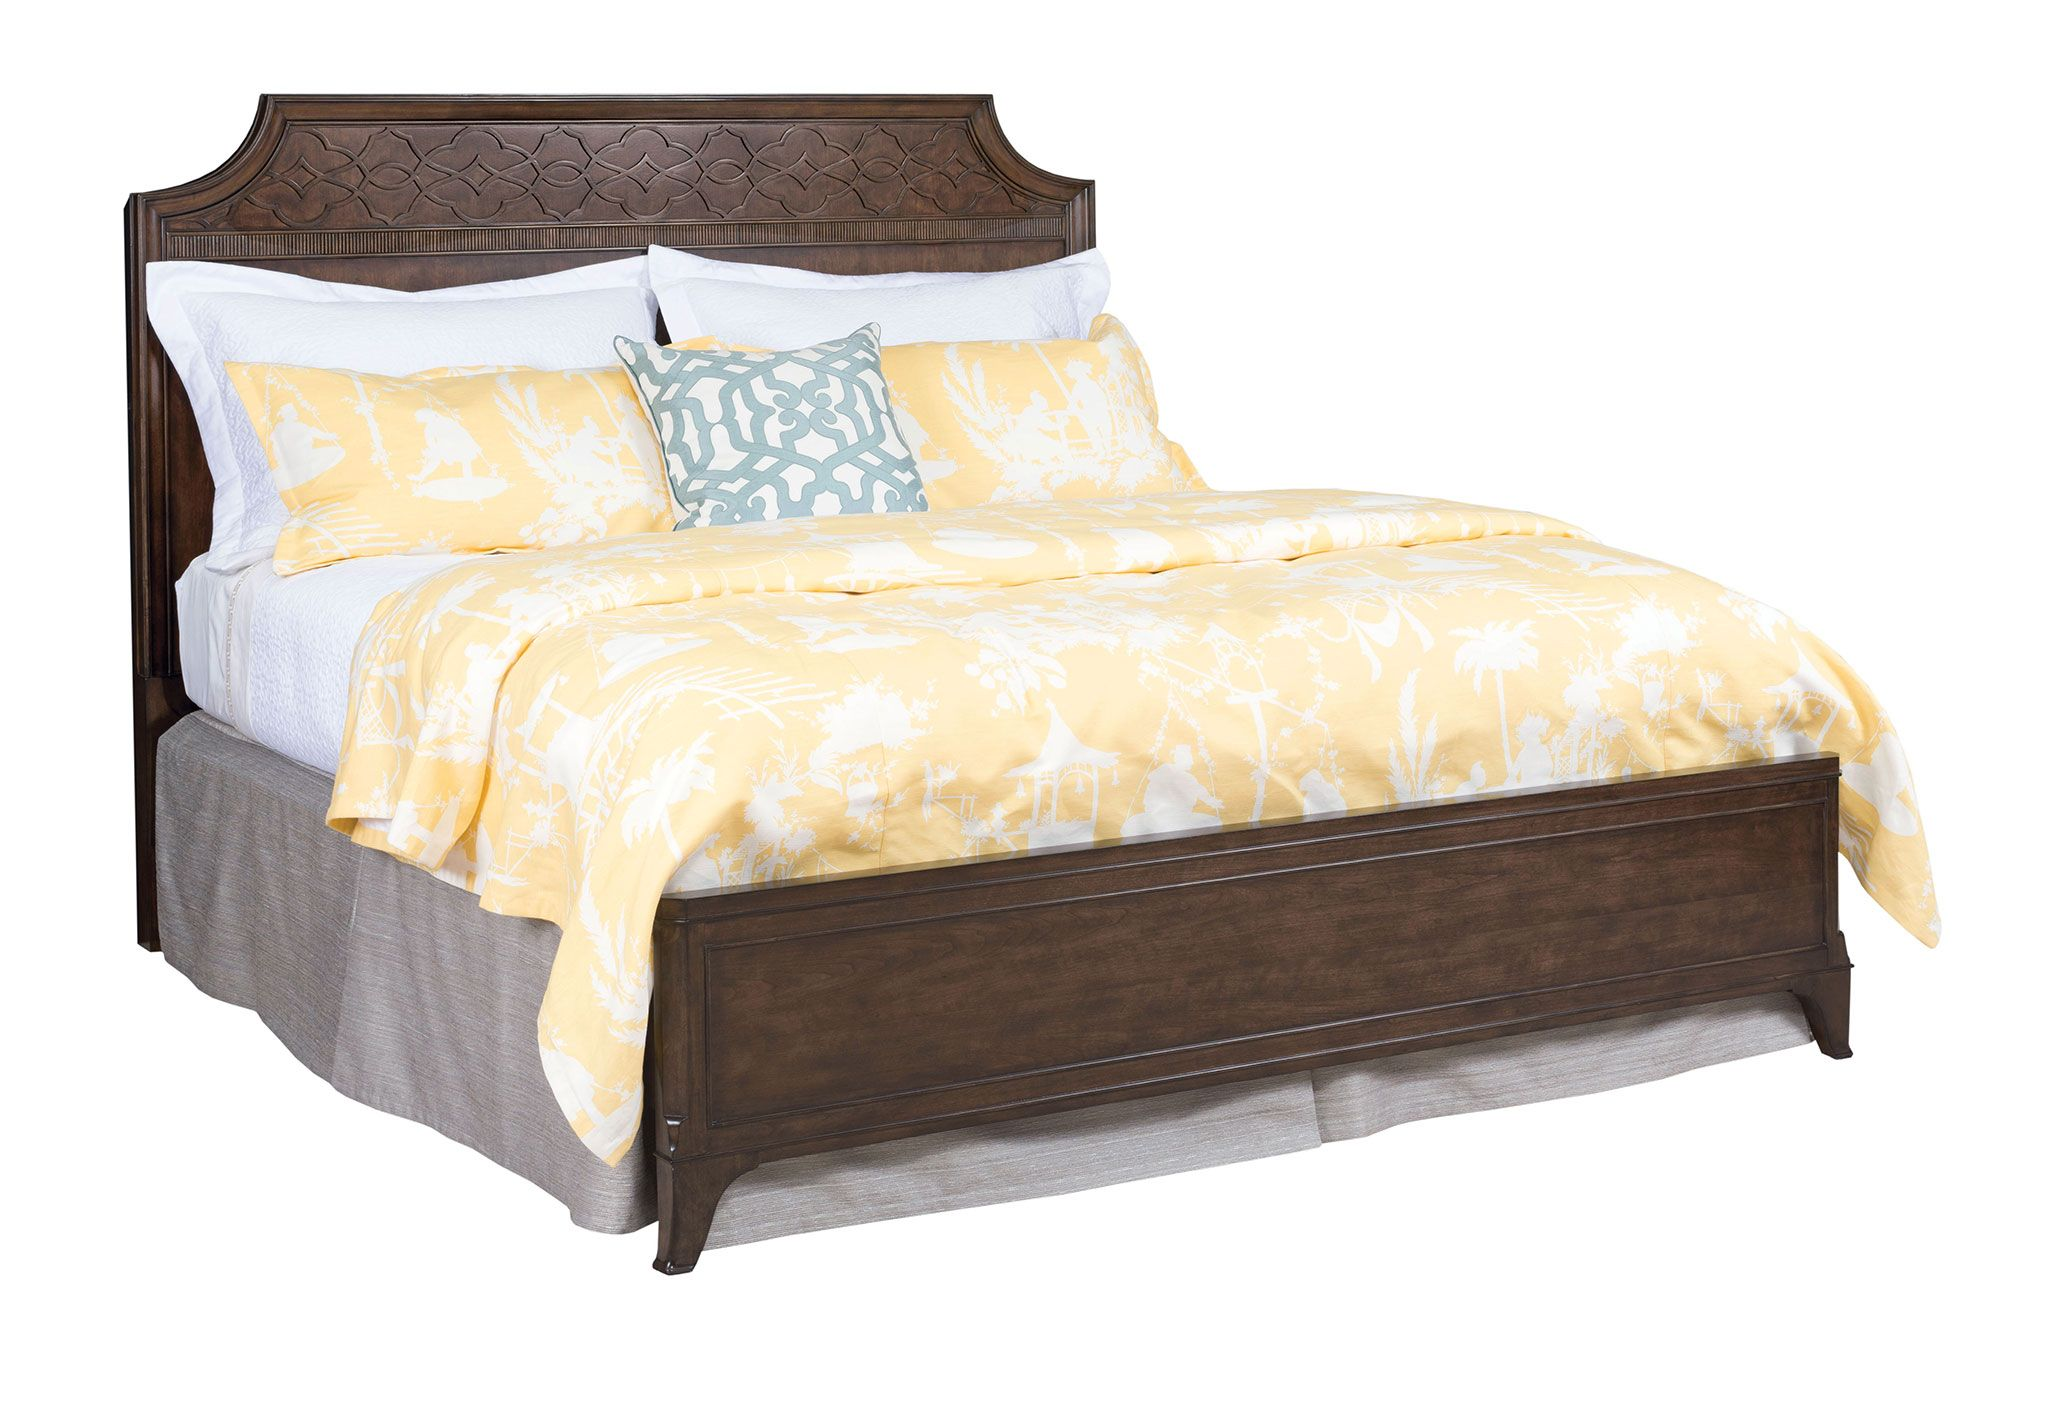 American Drew Grantham Hall Full/Queen Panel Bed - Item Number: 512-335R